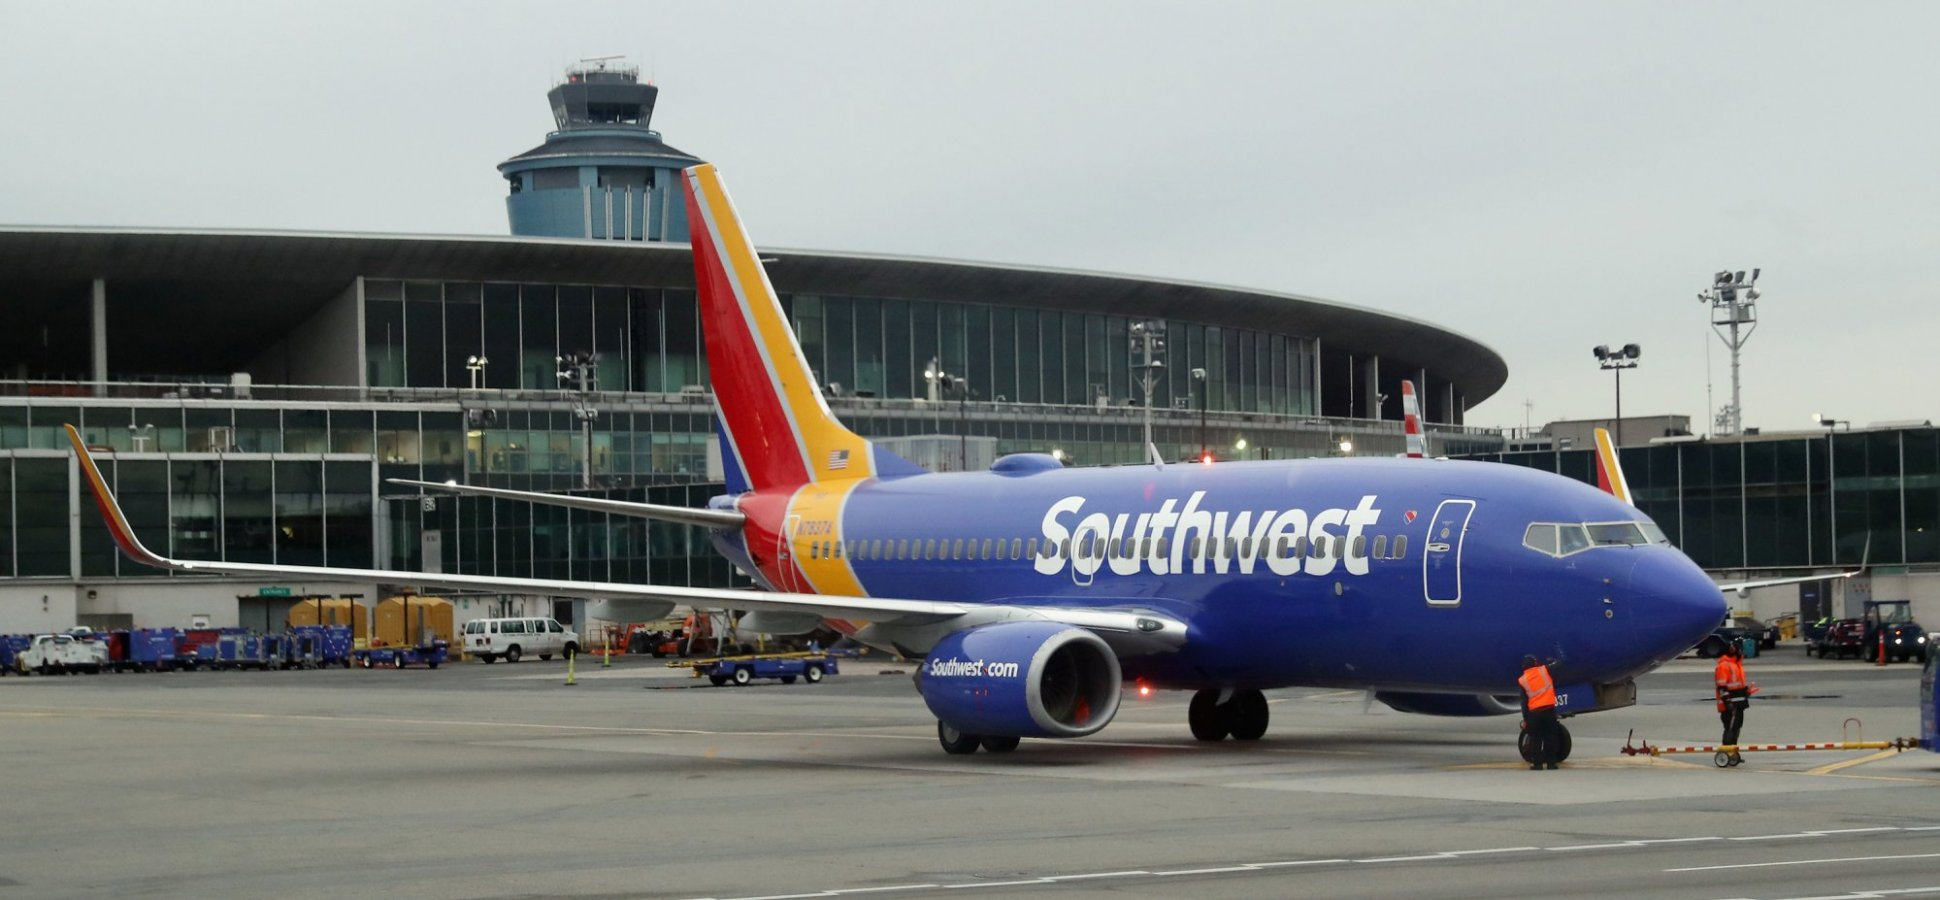 Southwest Airlines Just Revealed What the Government Shutdown Did to Southwest. (It's Much Worse Than Expected)